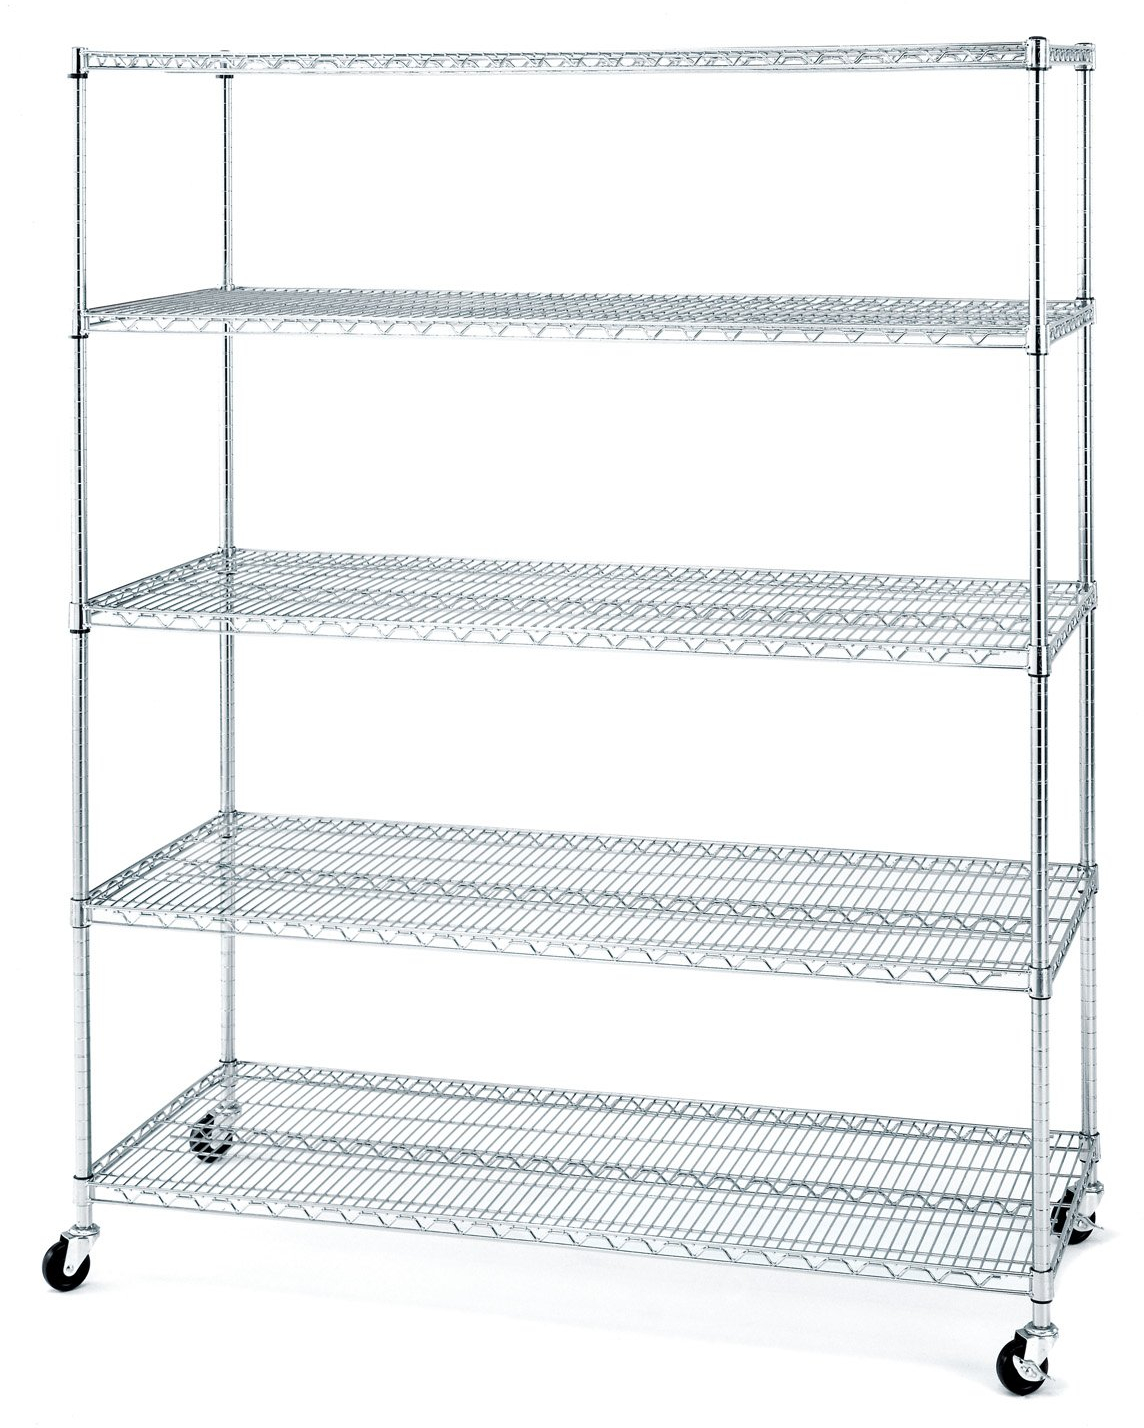 Details About 5 Tier Large Shelving Unit Chrome Wire Shelf Rolling Storage Rack Steel Shelves